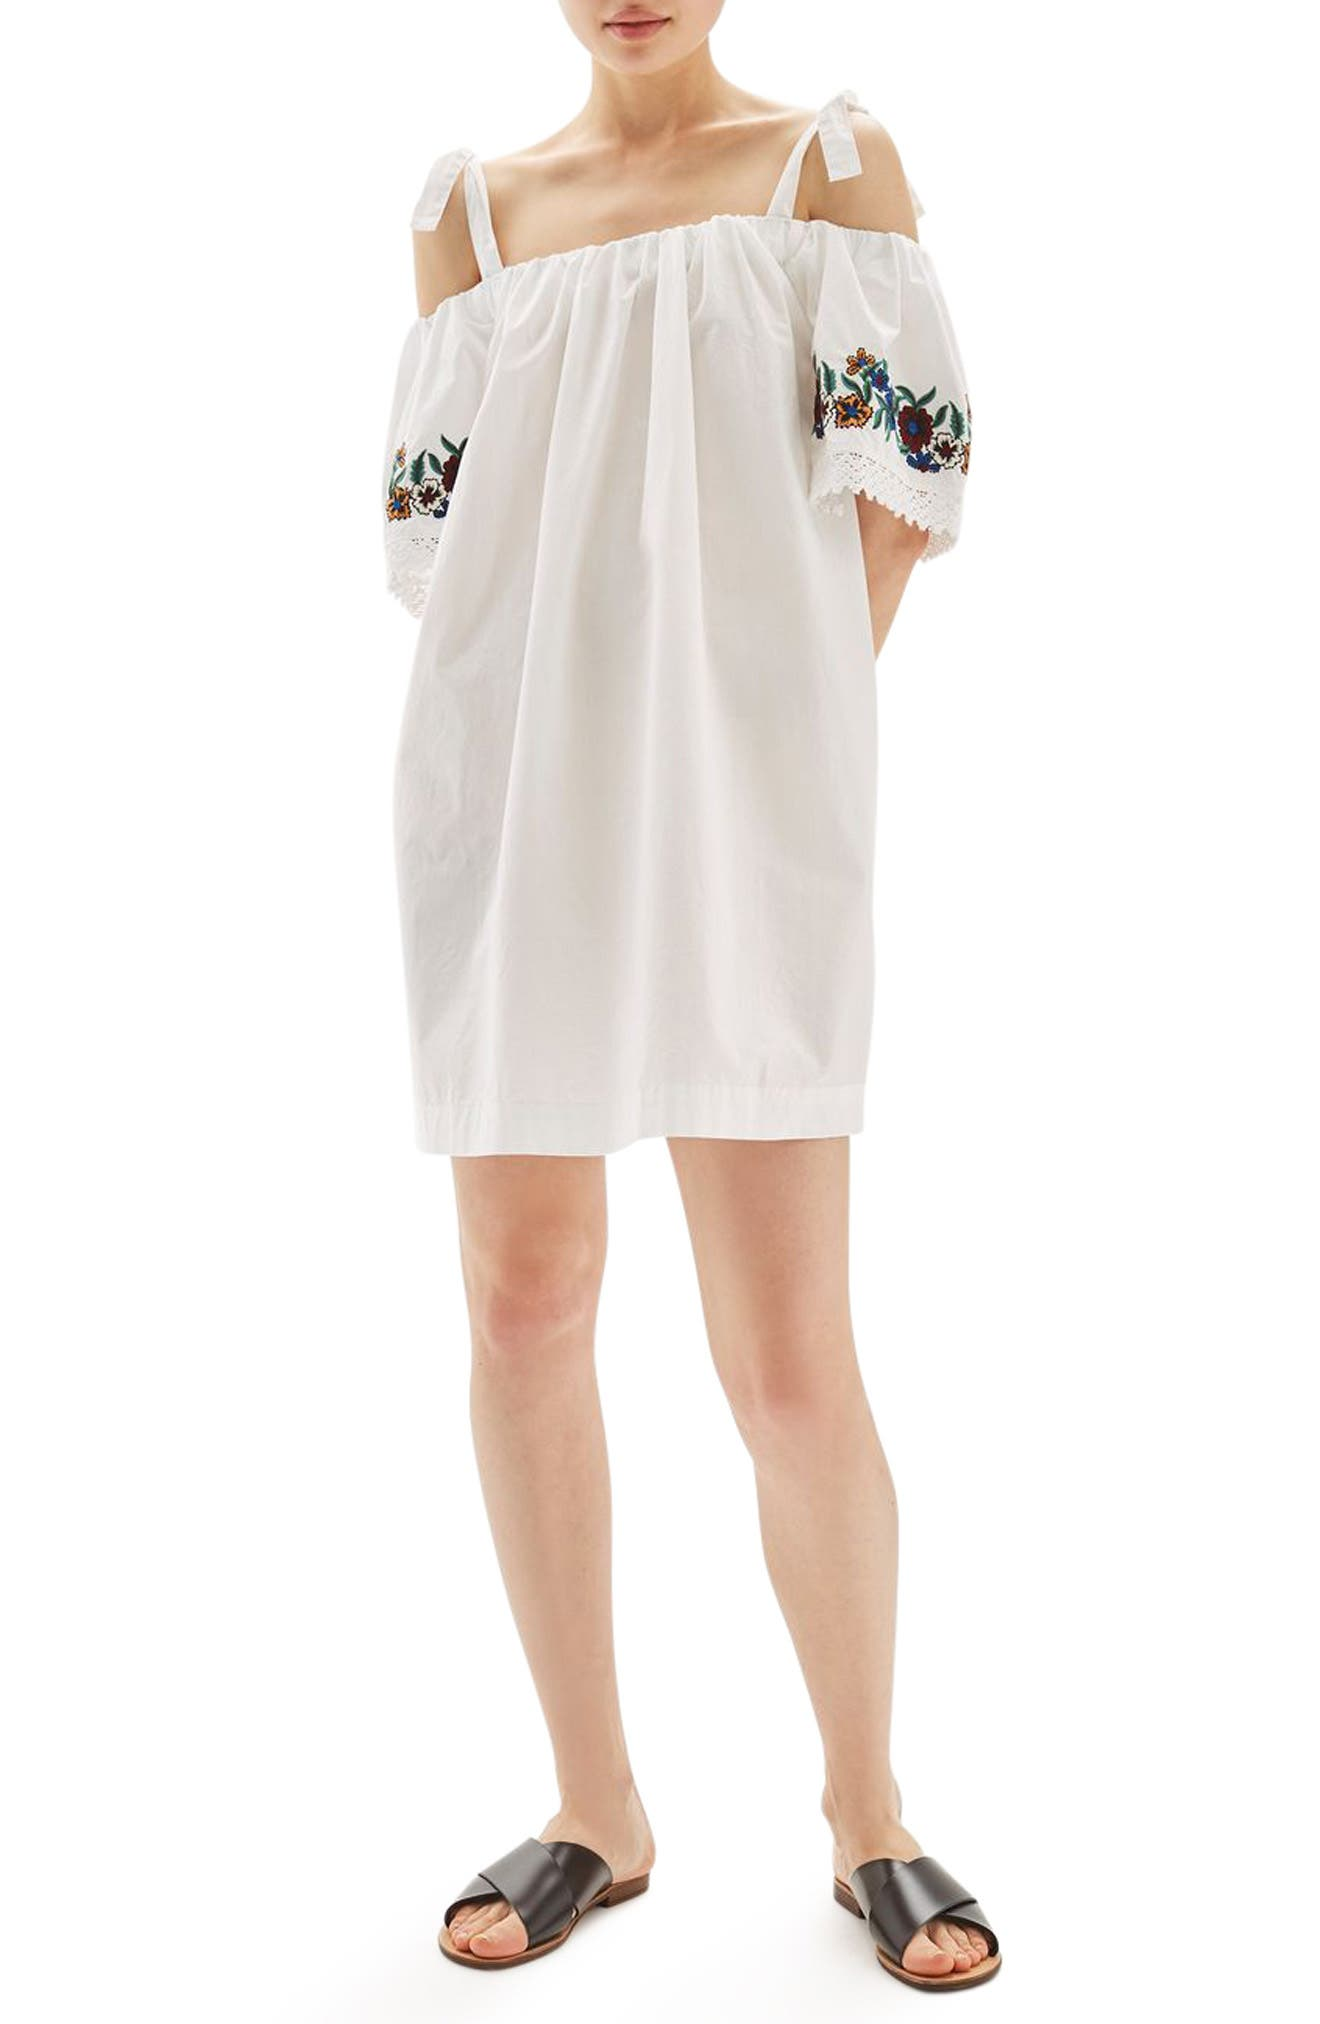 Topshop Bardot Embroidered Dress